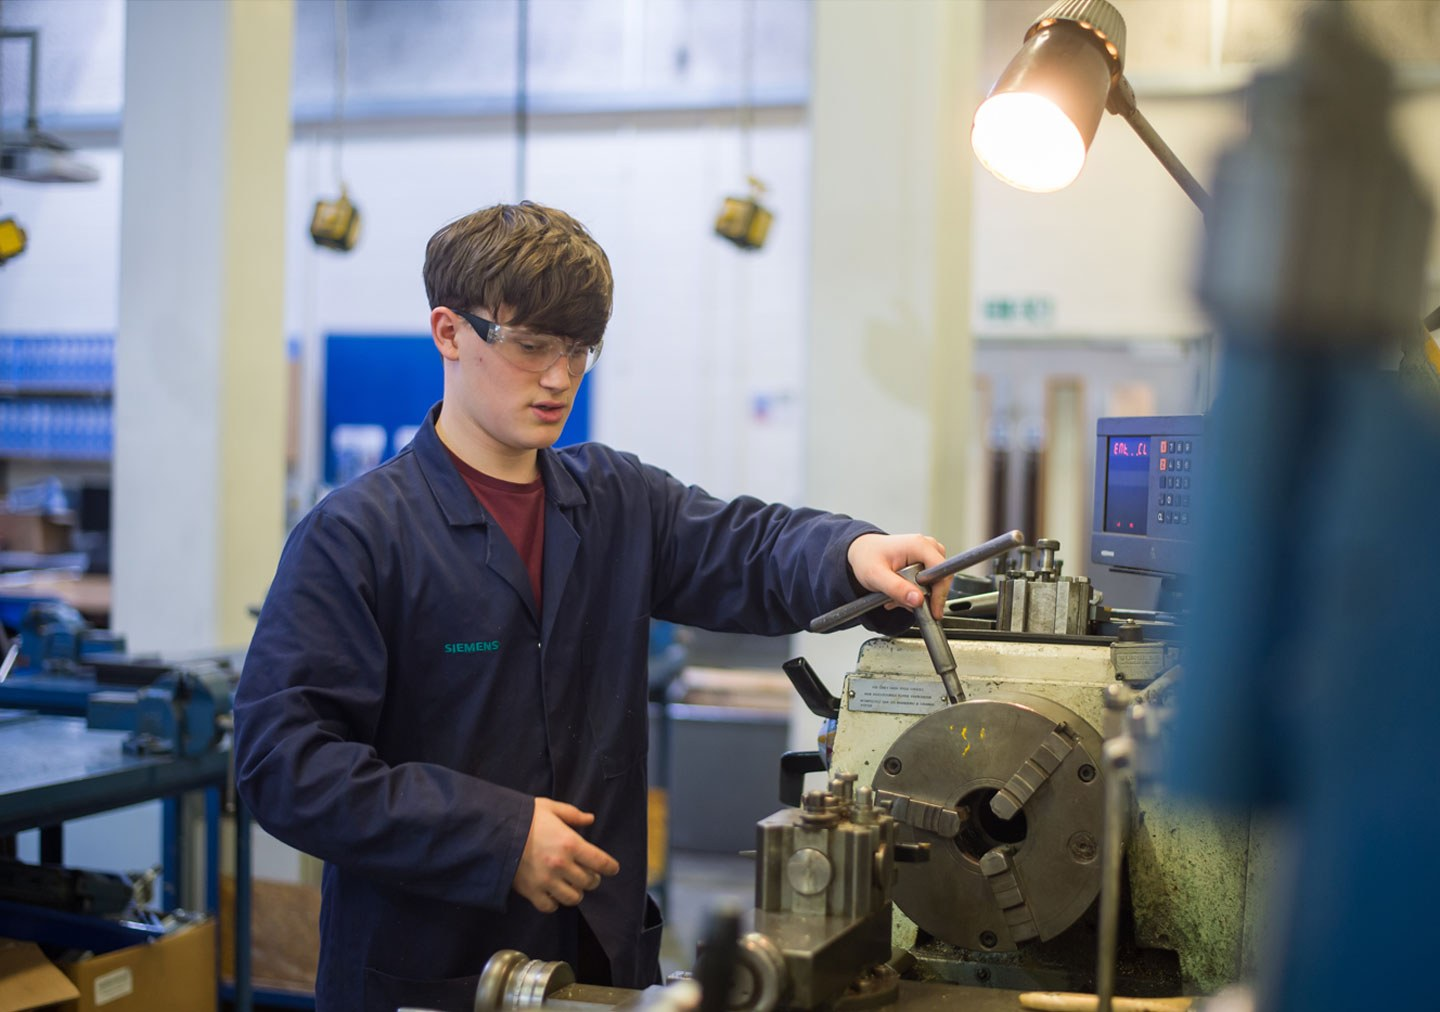 Student using the machinery in the engineering workshop